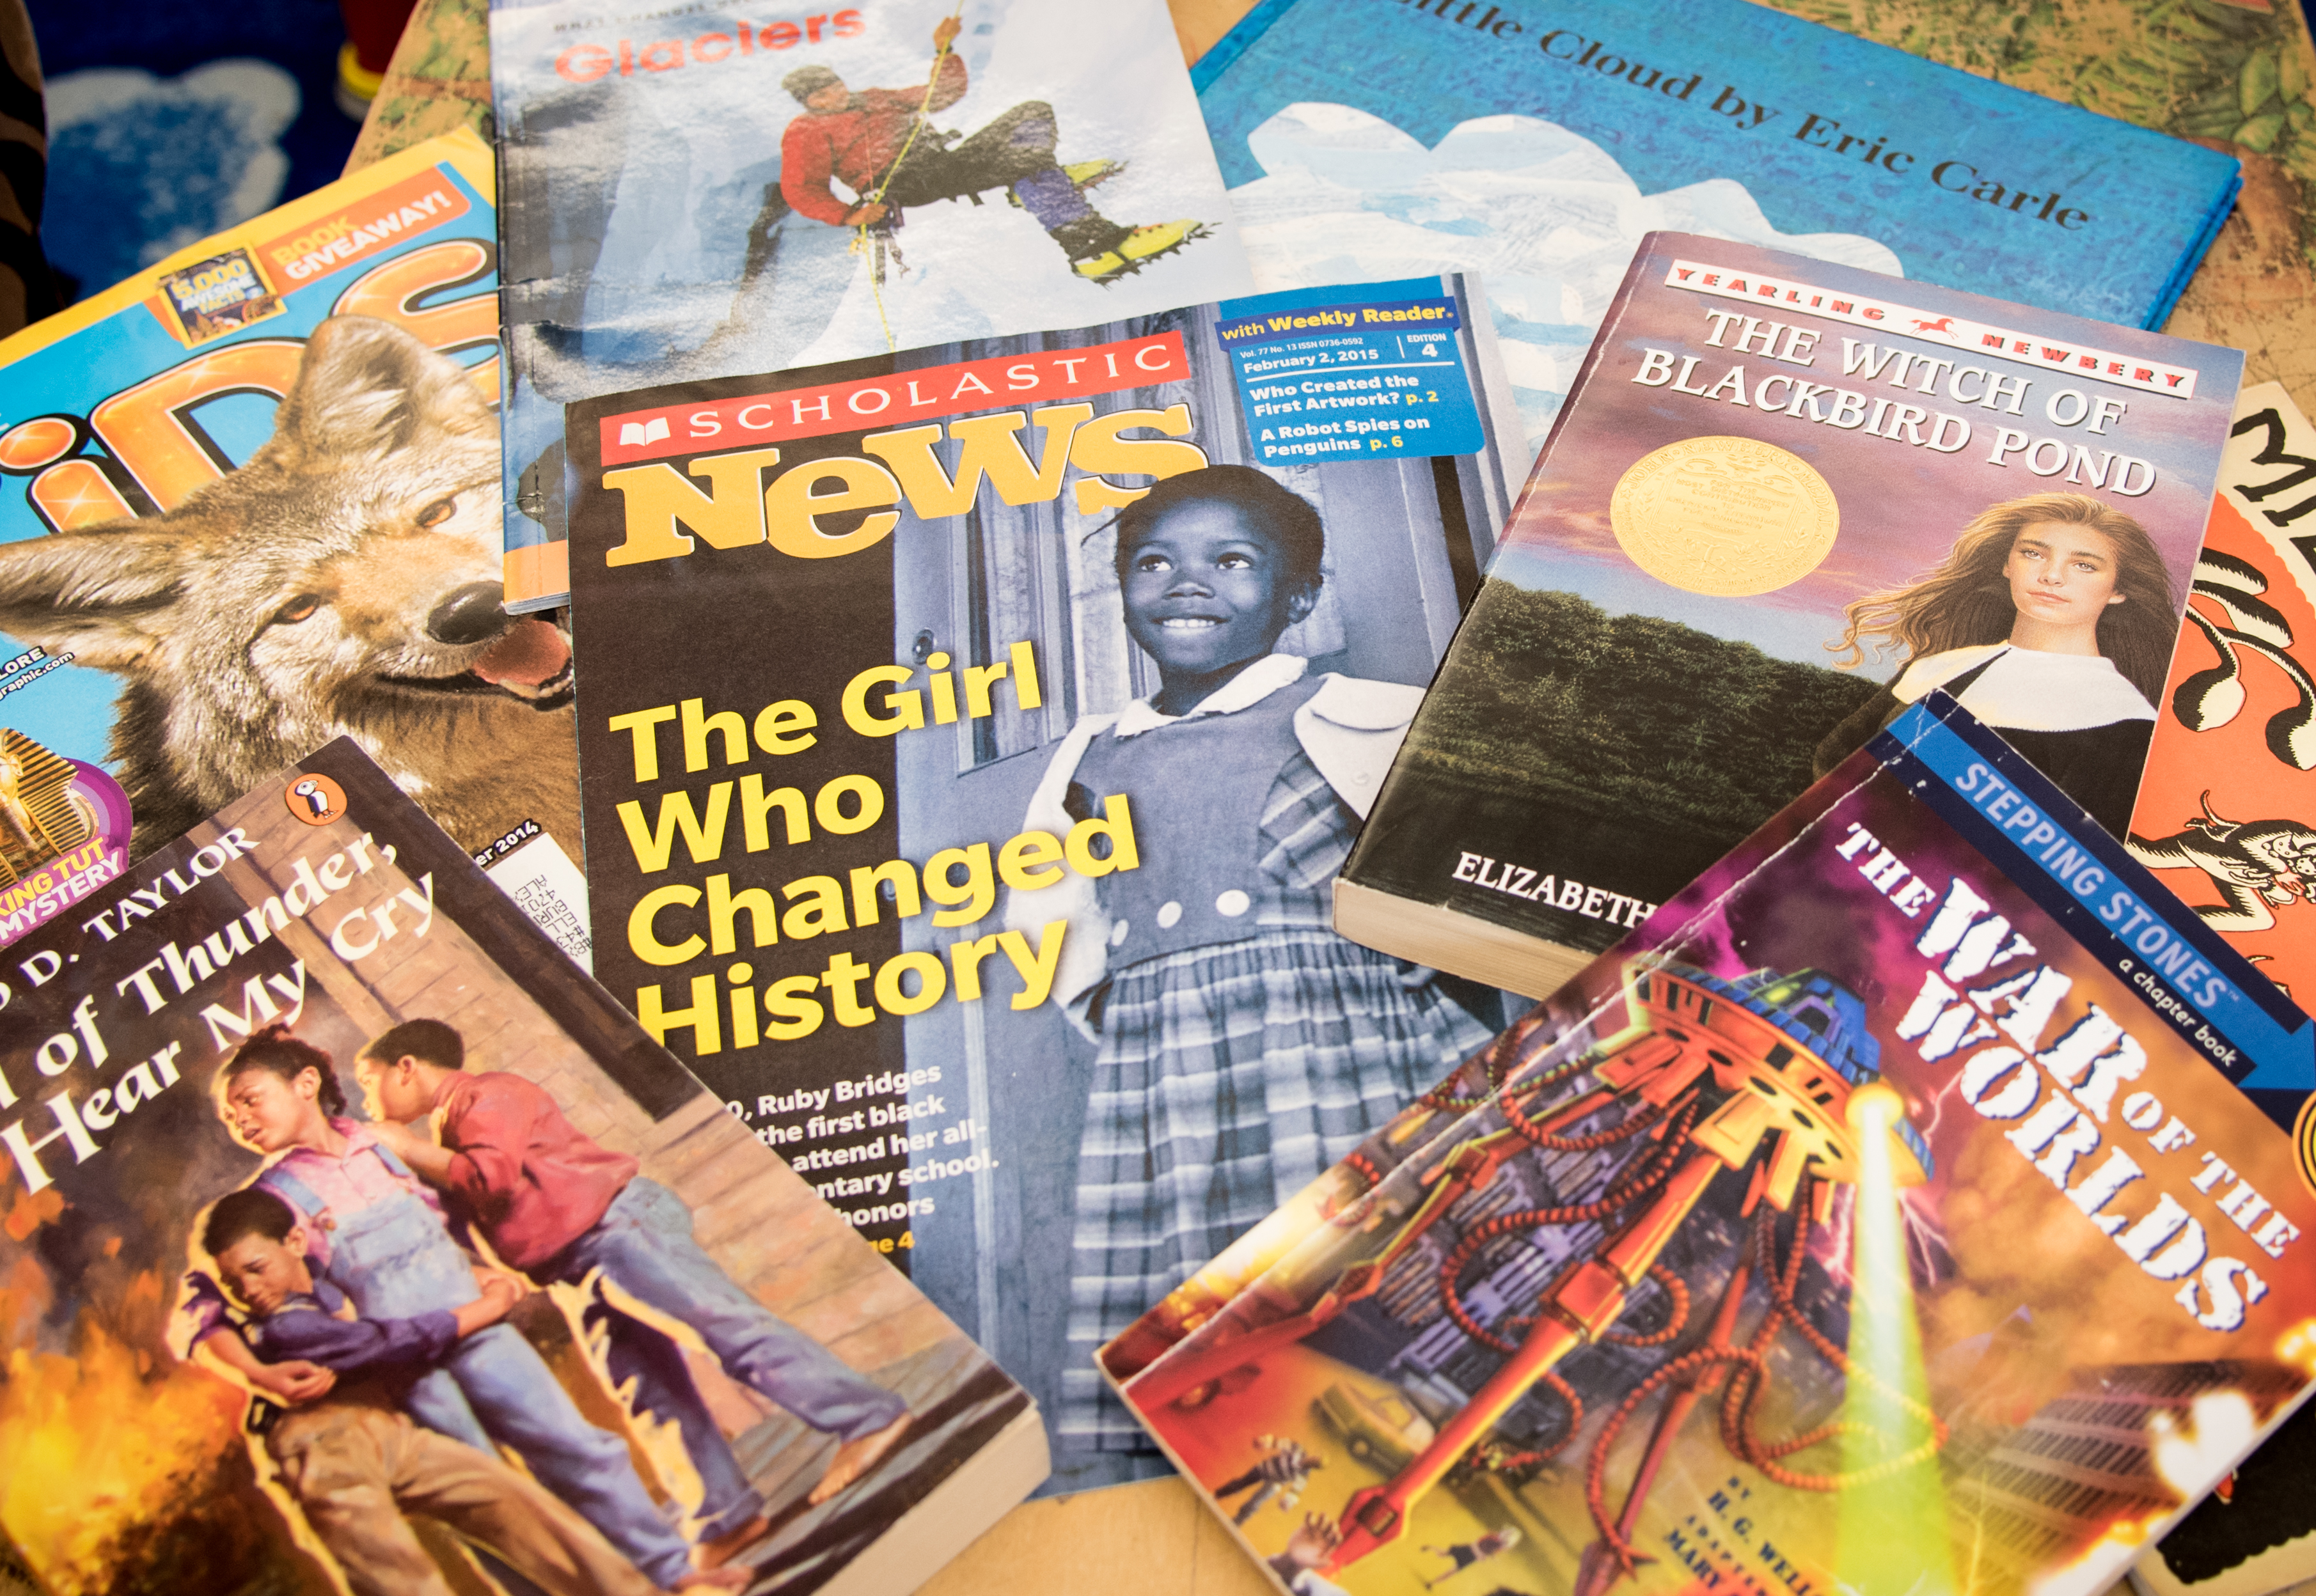 Spread of books and magazines